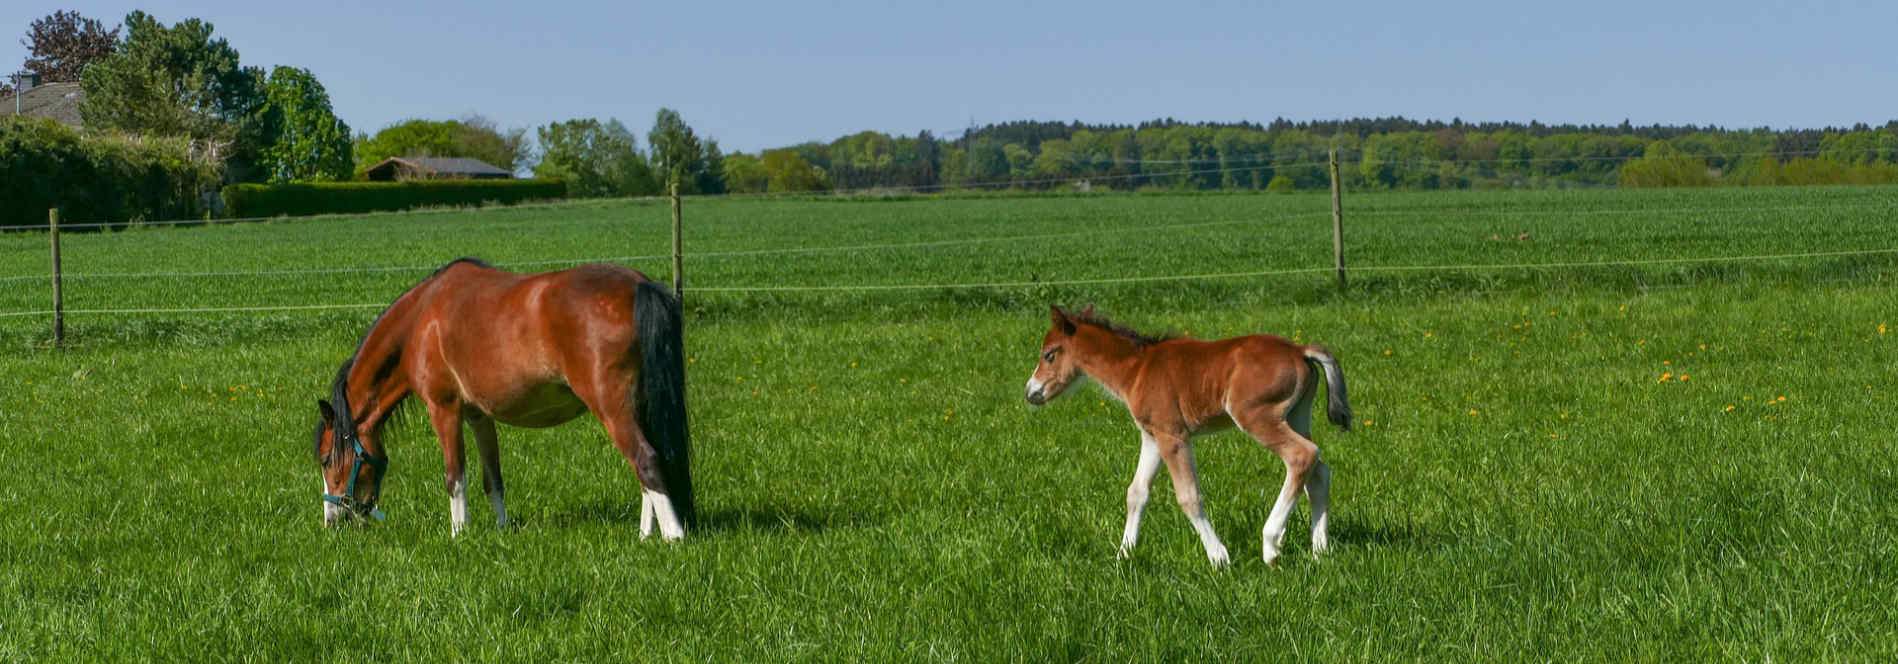 A mare and her colt grazing in a pasture after their horse transportation trip